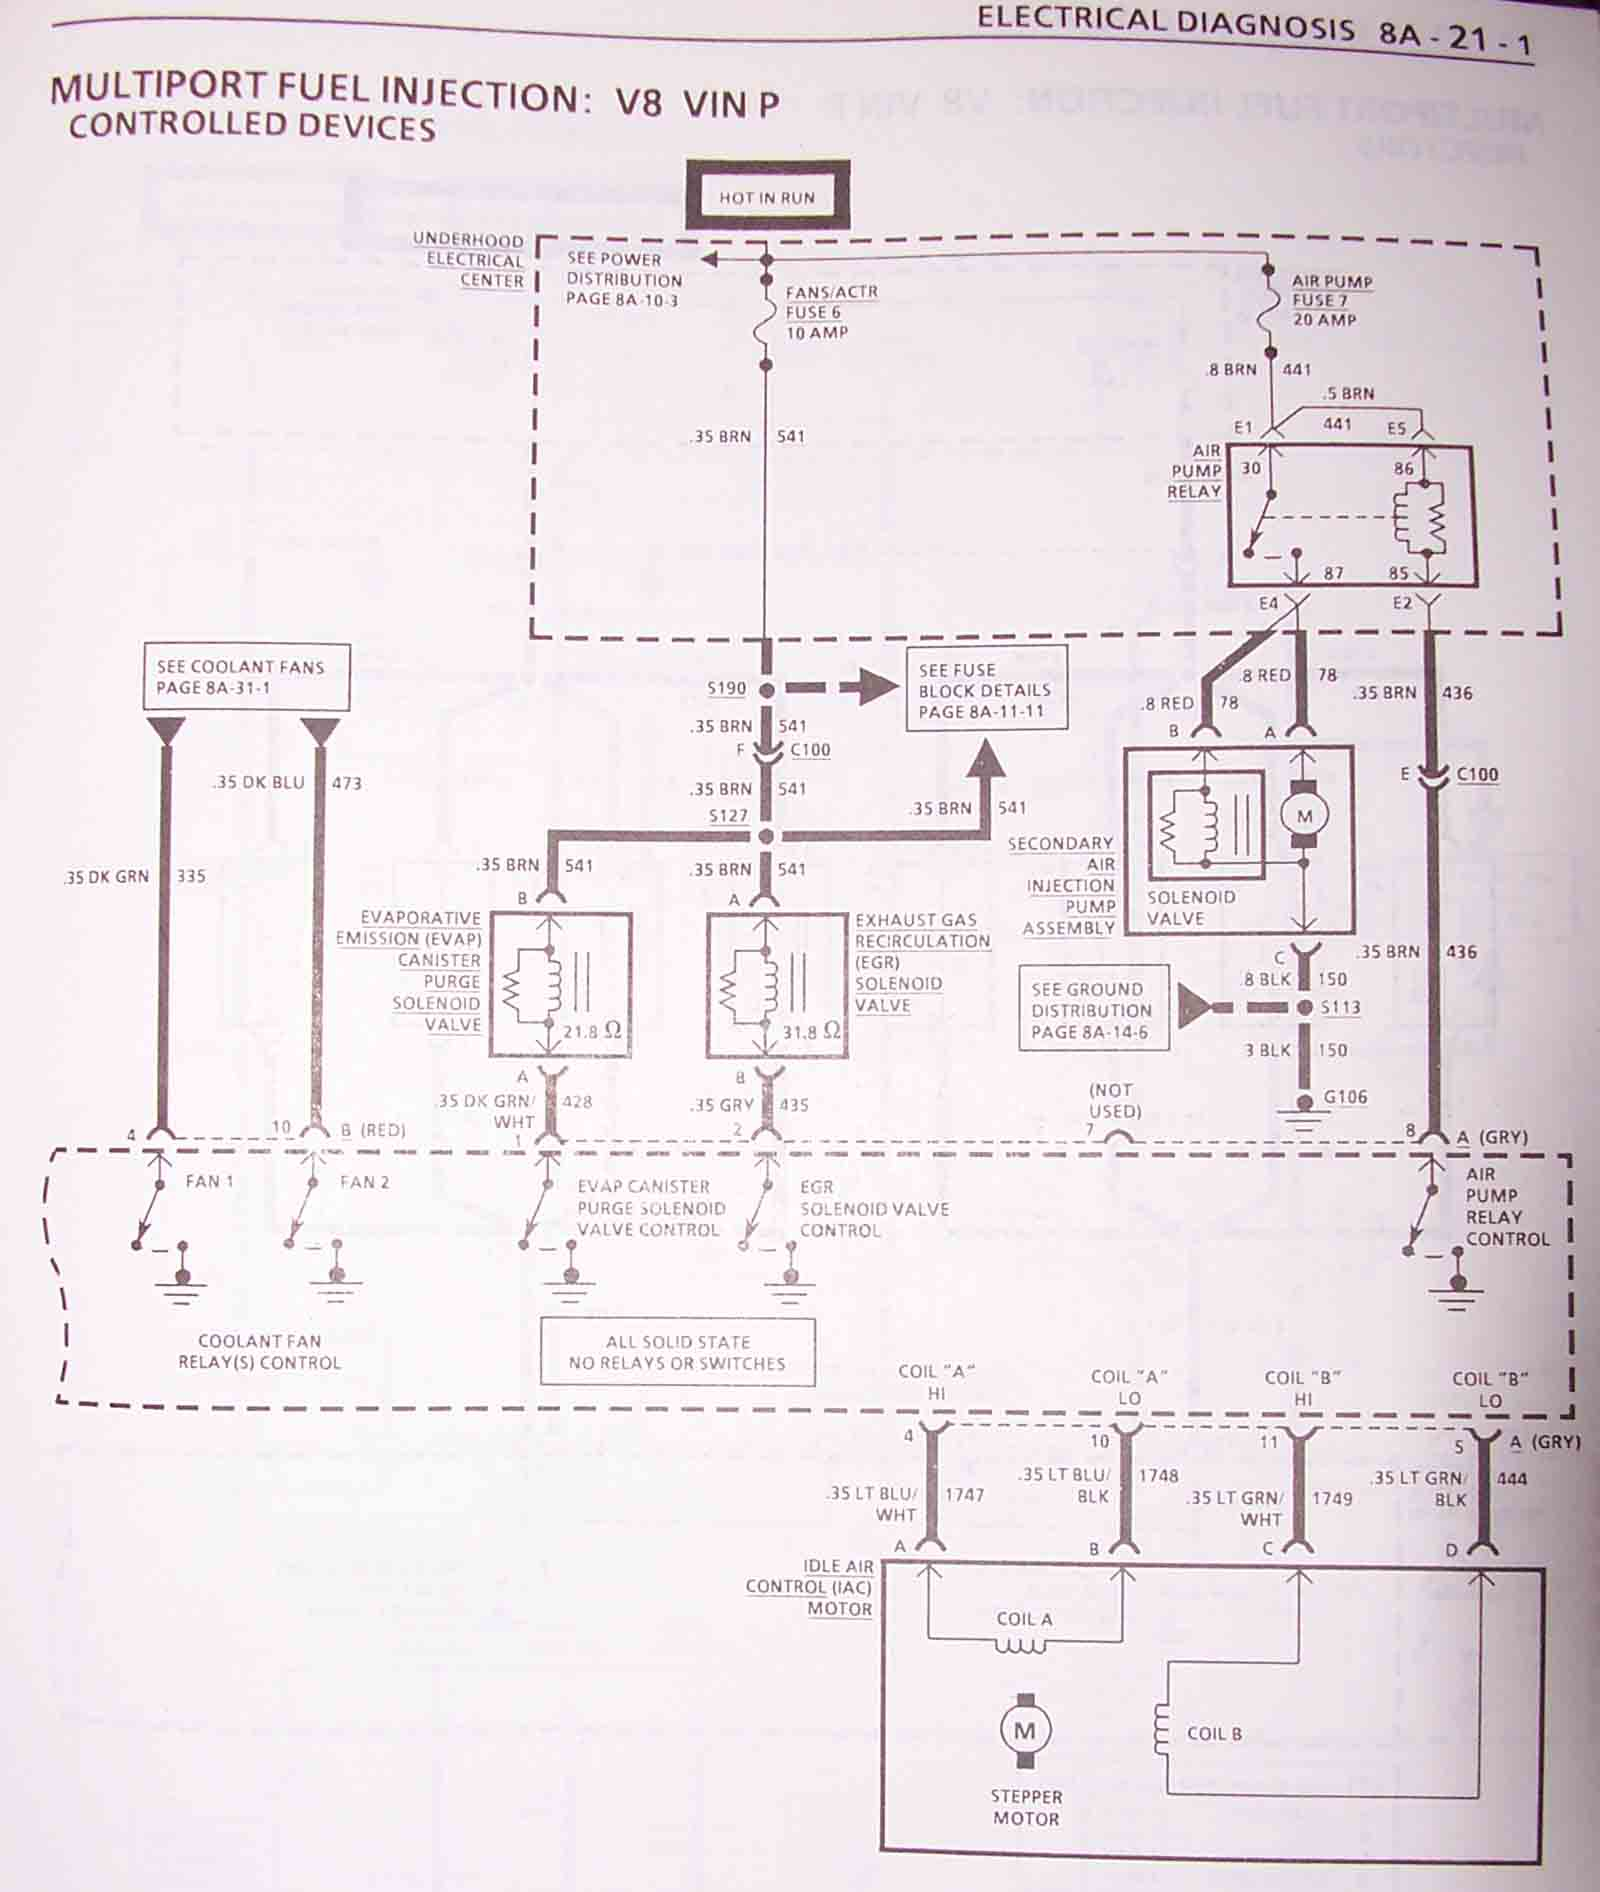 lt1 wiring diagram 1995 ford f150 radio 1993 camaro harness information controled devices